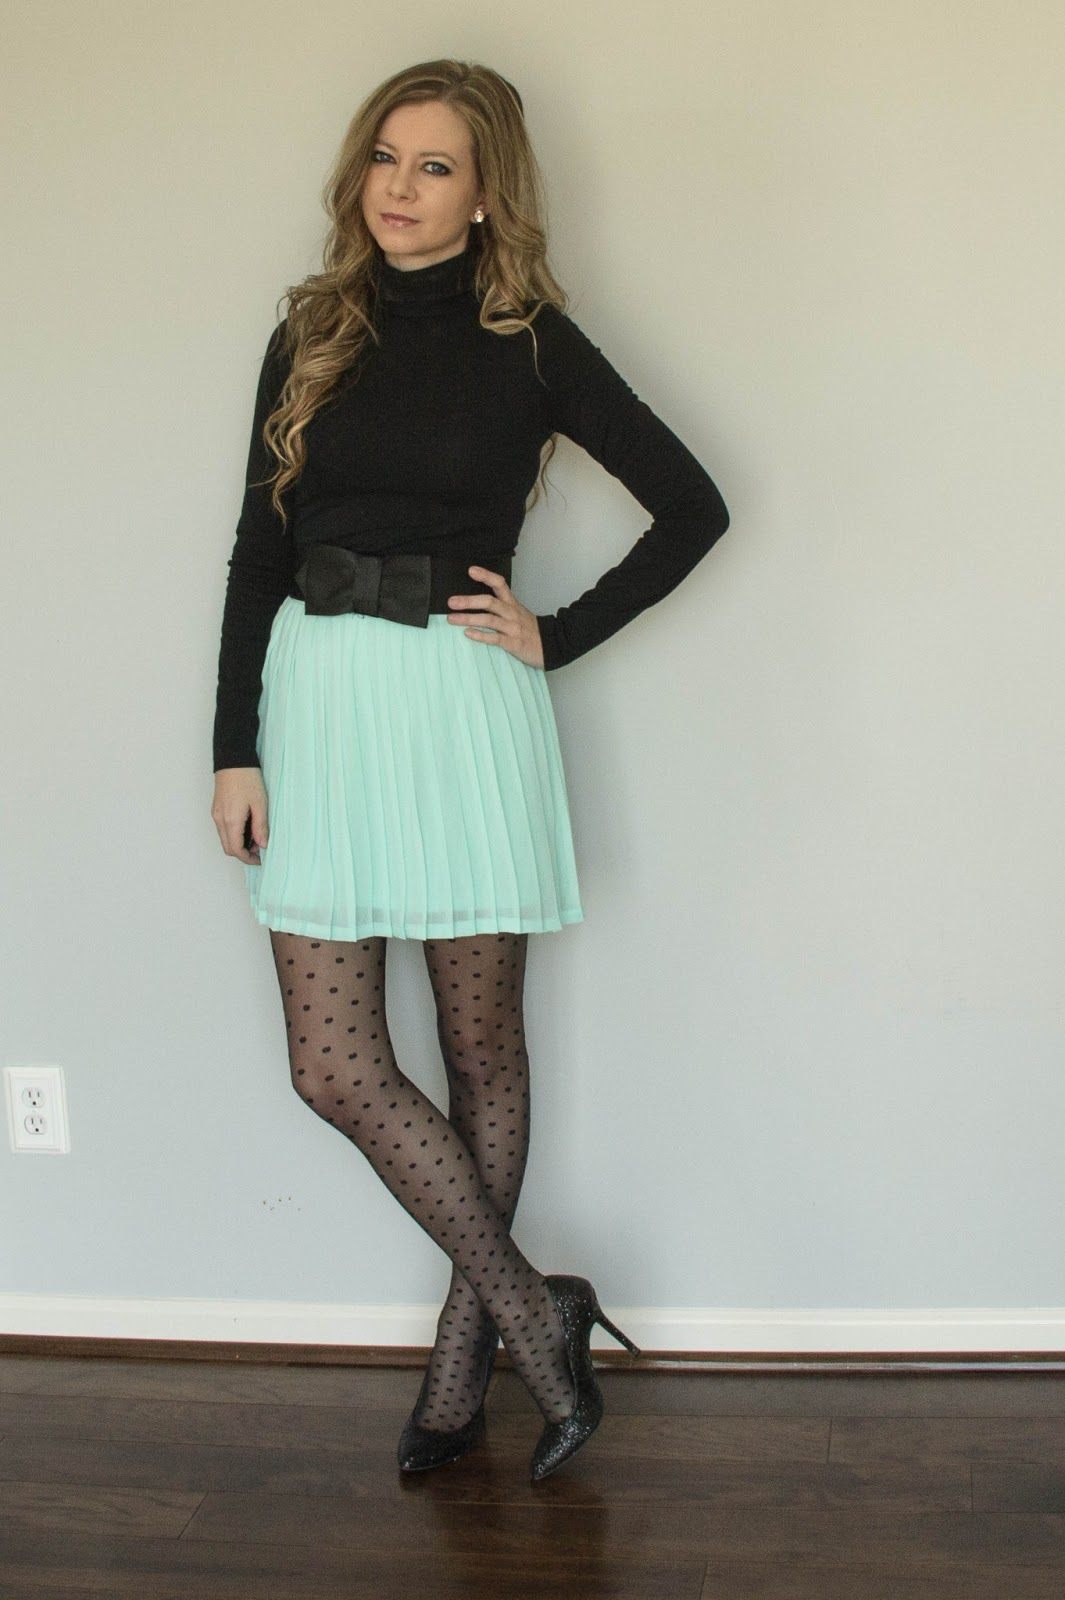 OOTD: Tiffany blue and bows - Modern Camelot Kelly Slater Daughter